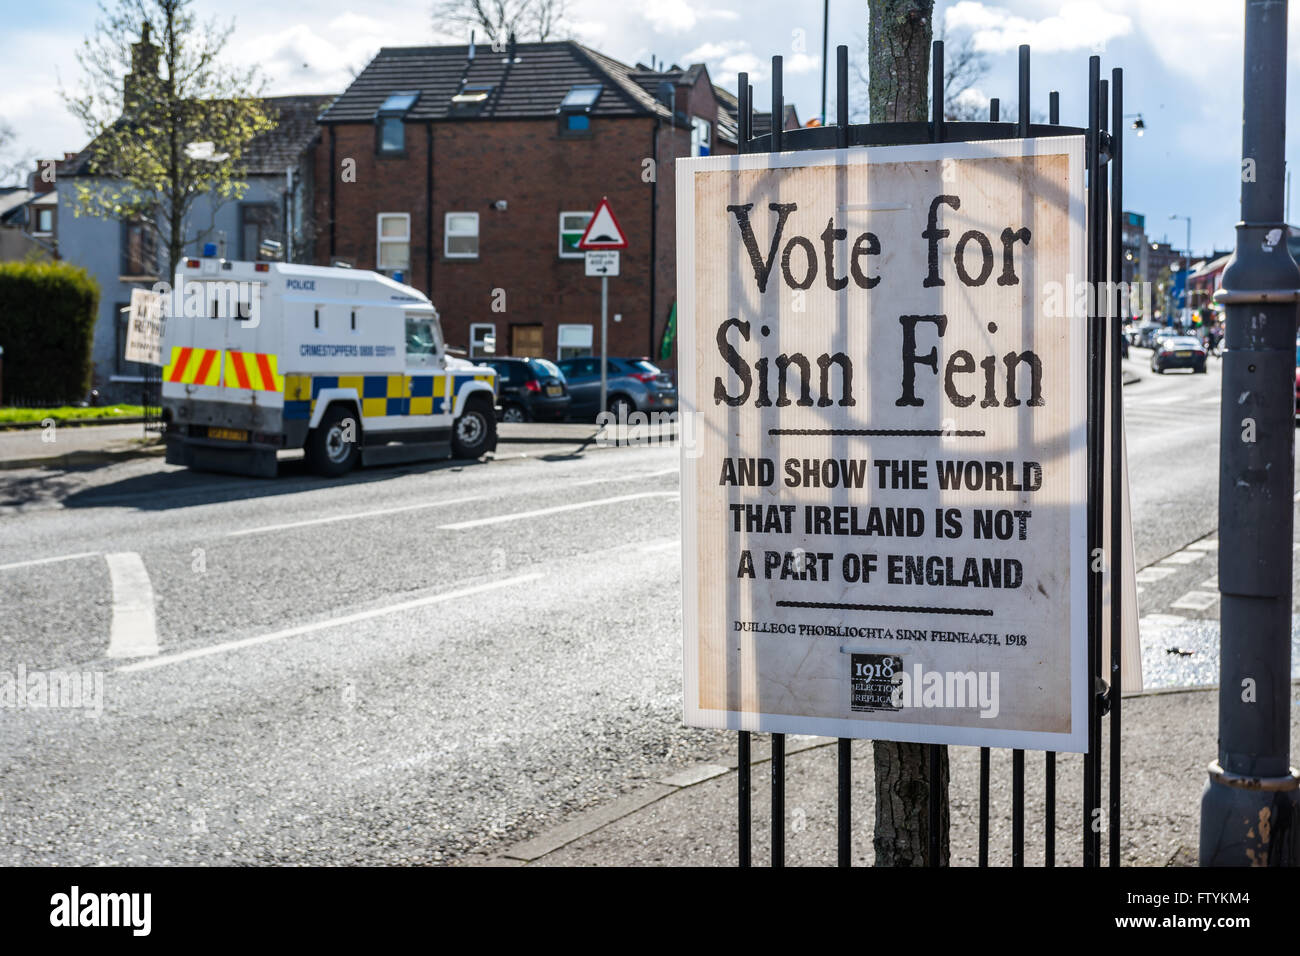 Vote for Sinn Fein election poster on Belfast's Falls Road with PSNI land rover parked in background. - Stock Image